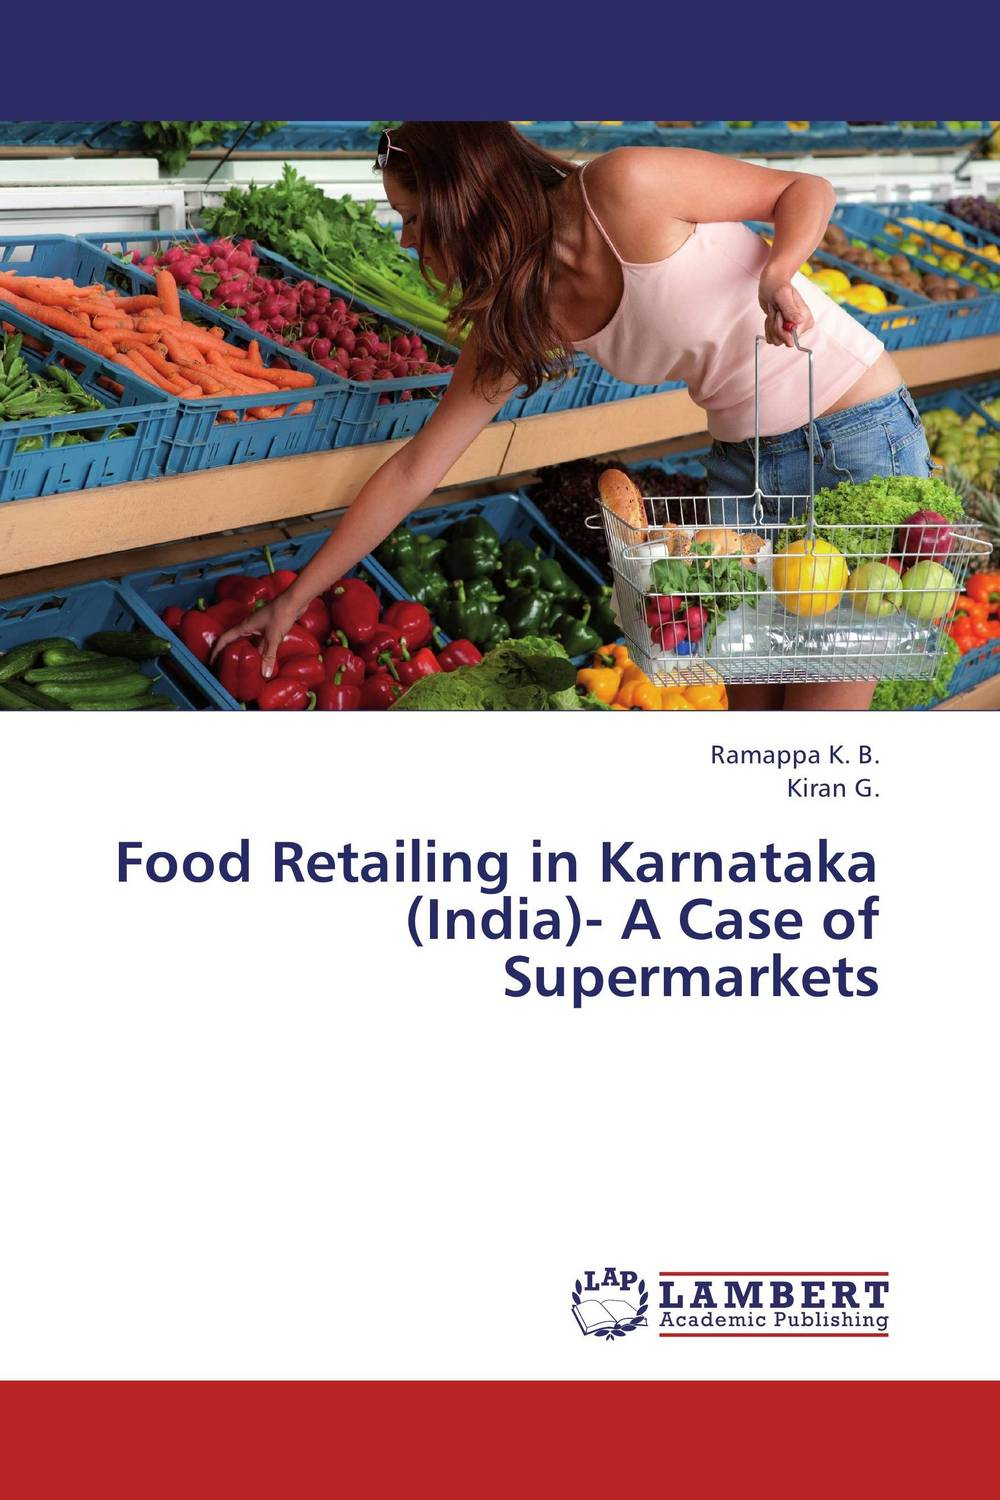 Food Retailing in Karnataka (India)- A Case of Supermarkets pastoralism and agriculture pennar basin india